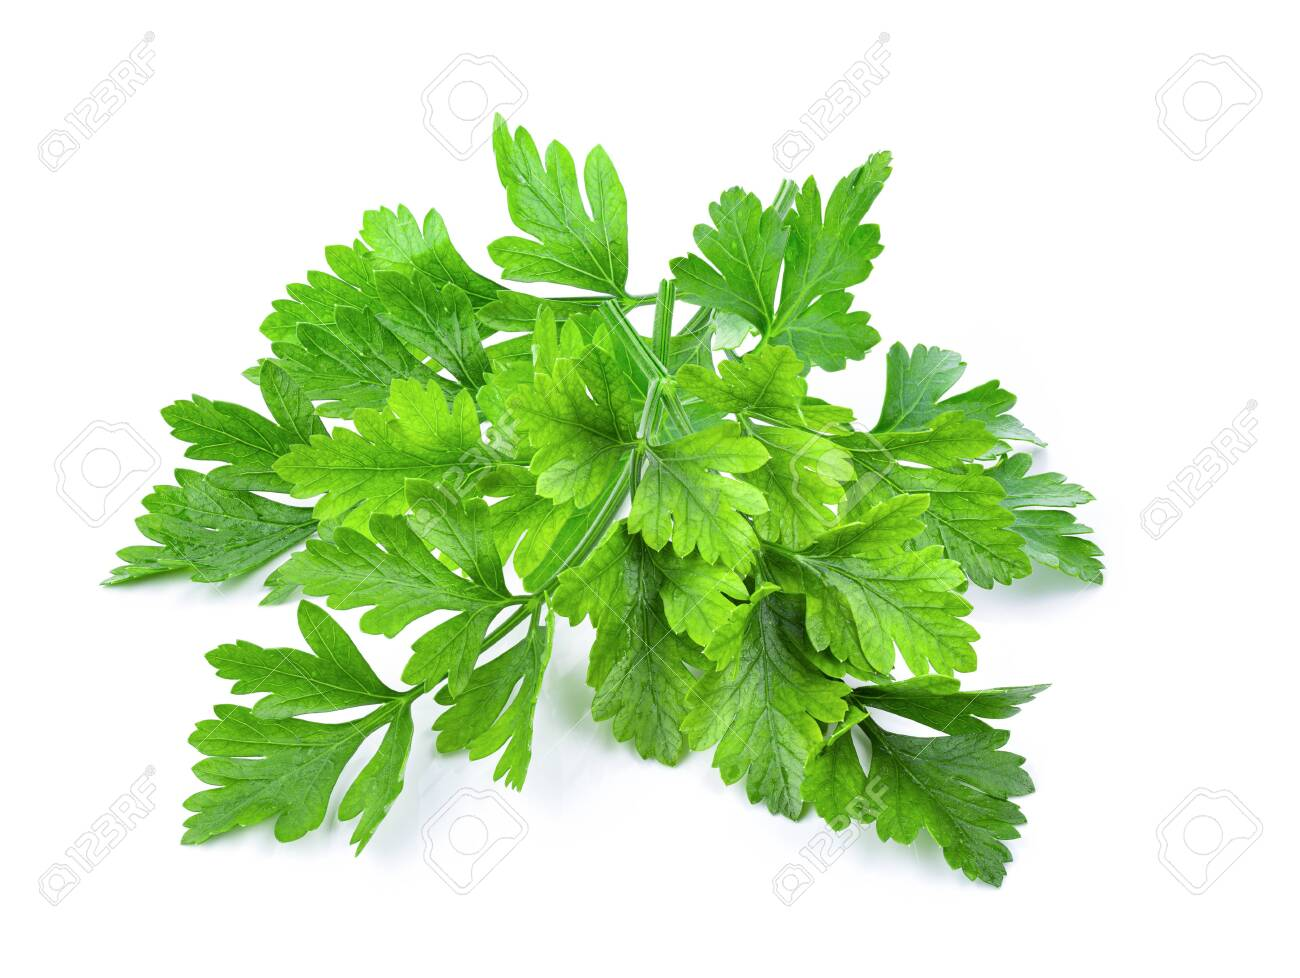 Parsley isolated on a white background - 136593007